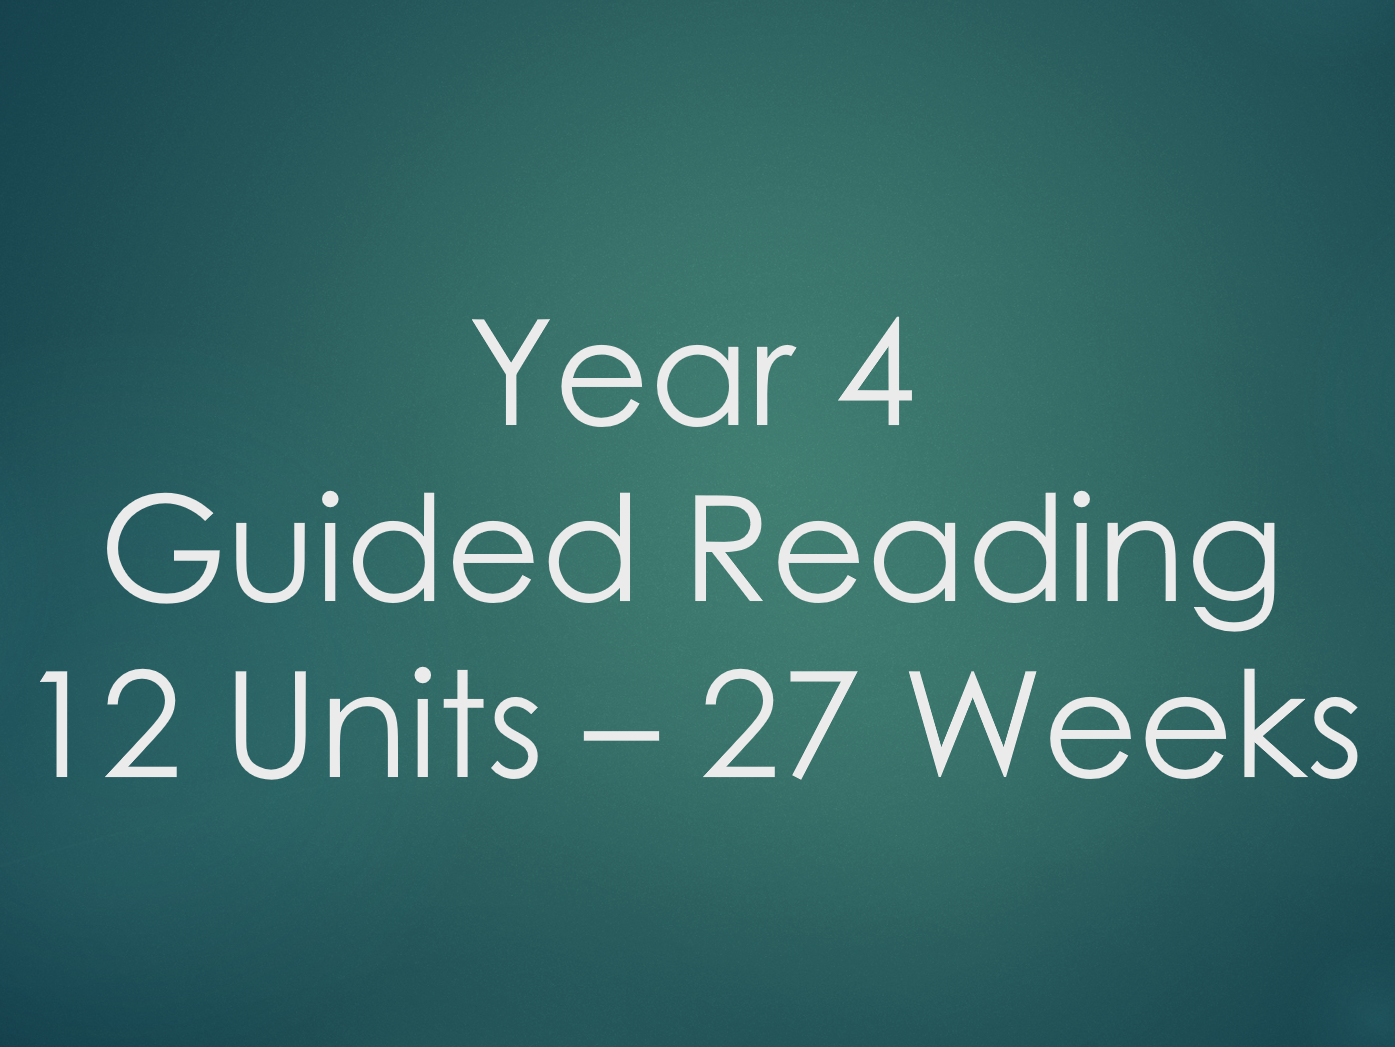 Year 4 Guided Reading - 12 Units - 27 Weeks